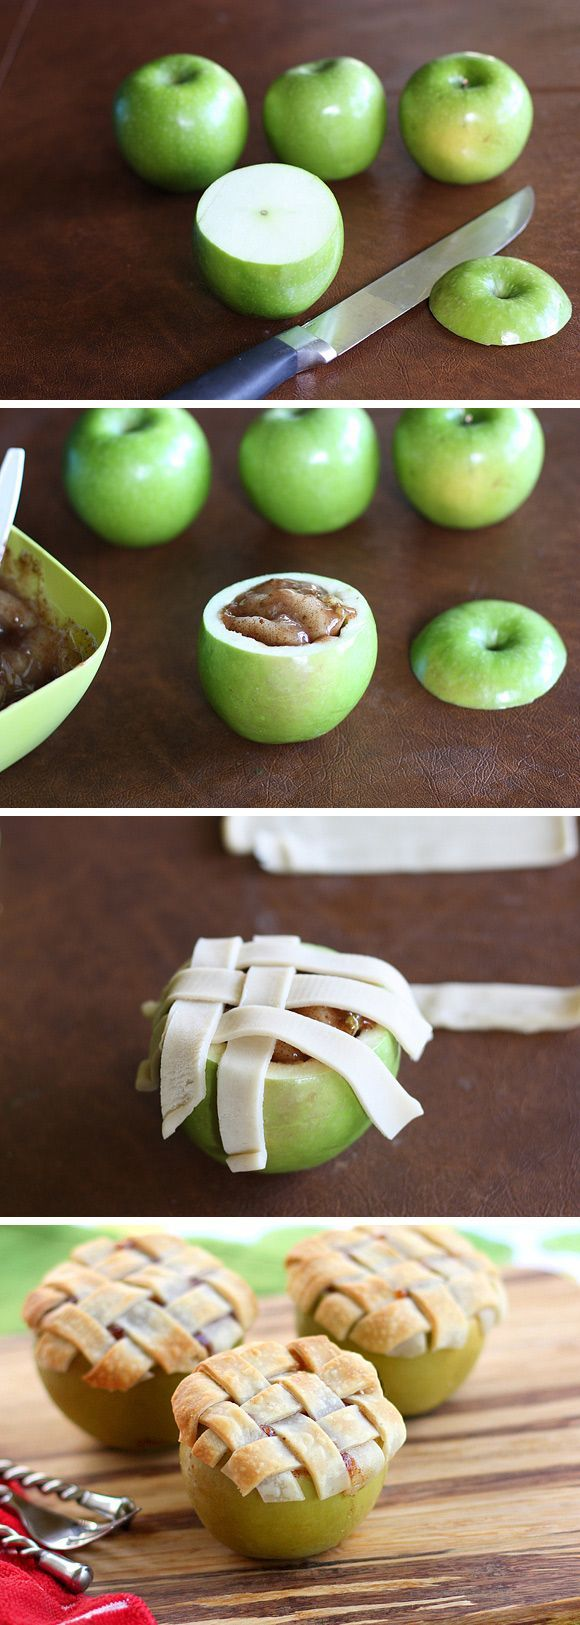 No sharing necessary with these individual apple pies! Pour your pie filling into hollowed out apples, garnish with cinnamon, and top with a lattice crust to make these easy and impressive desserts. They are so delicious that you will be asked to make them year after year.